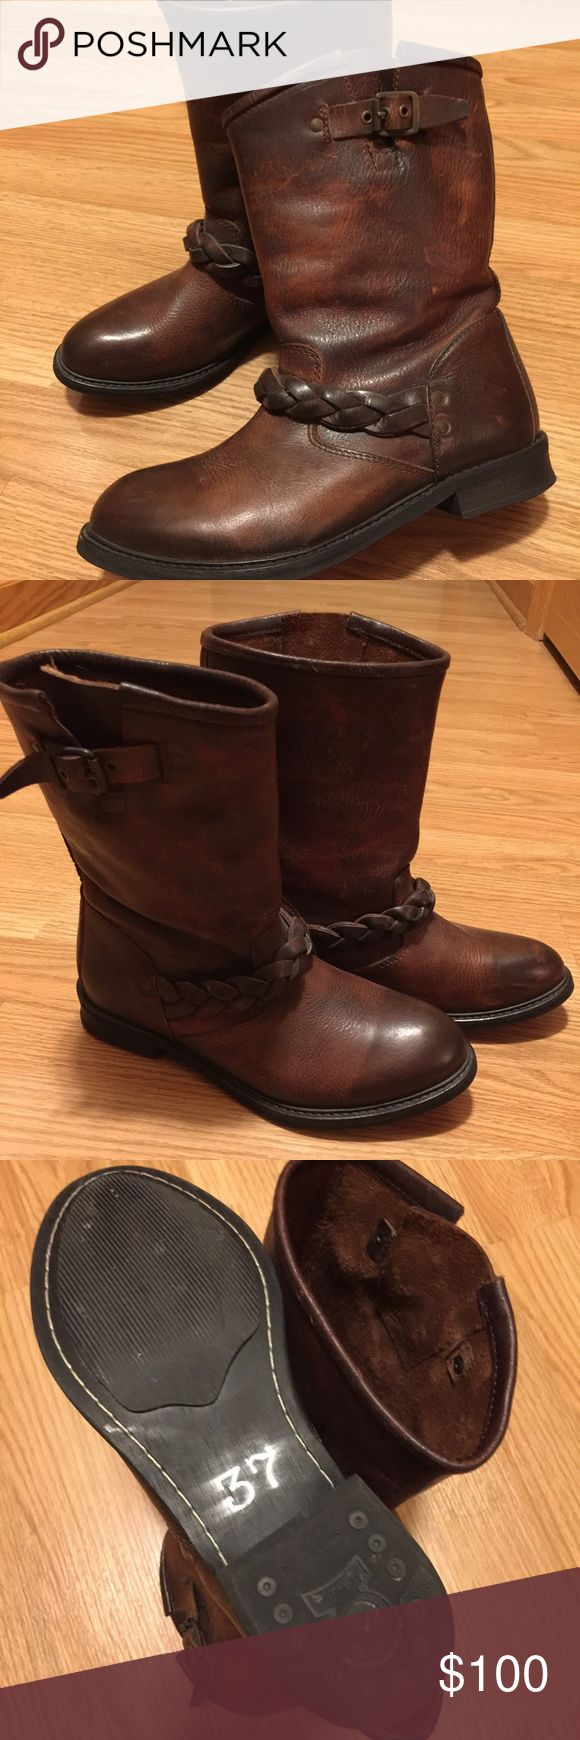 H by Hudson Albion Biker Boots | UK 37 US 6 Beautiful distressed brown leather boots. Great quality! Only worn a couple times. Purchased from U.K. Website JulesB. Fits like a US size 6 even though UK size 37. Runs small. 🚫 trades pls. H By Hudson Shoes Ankle Boots & Booties